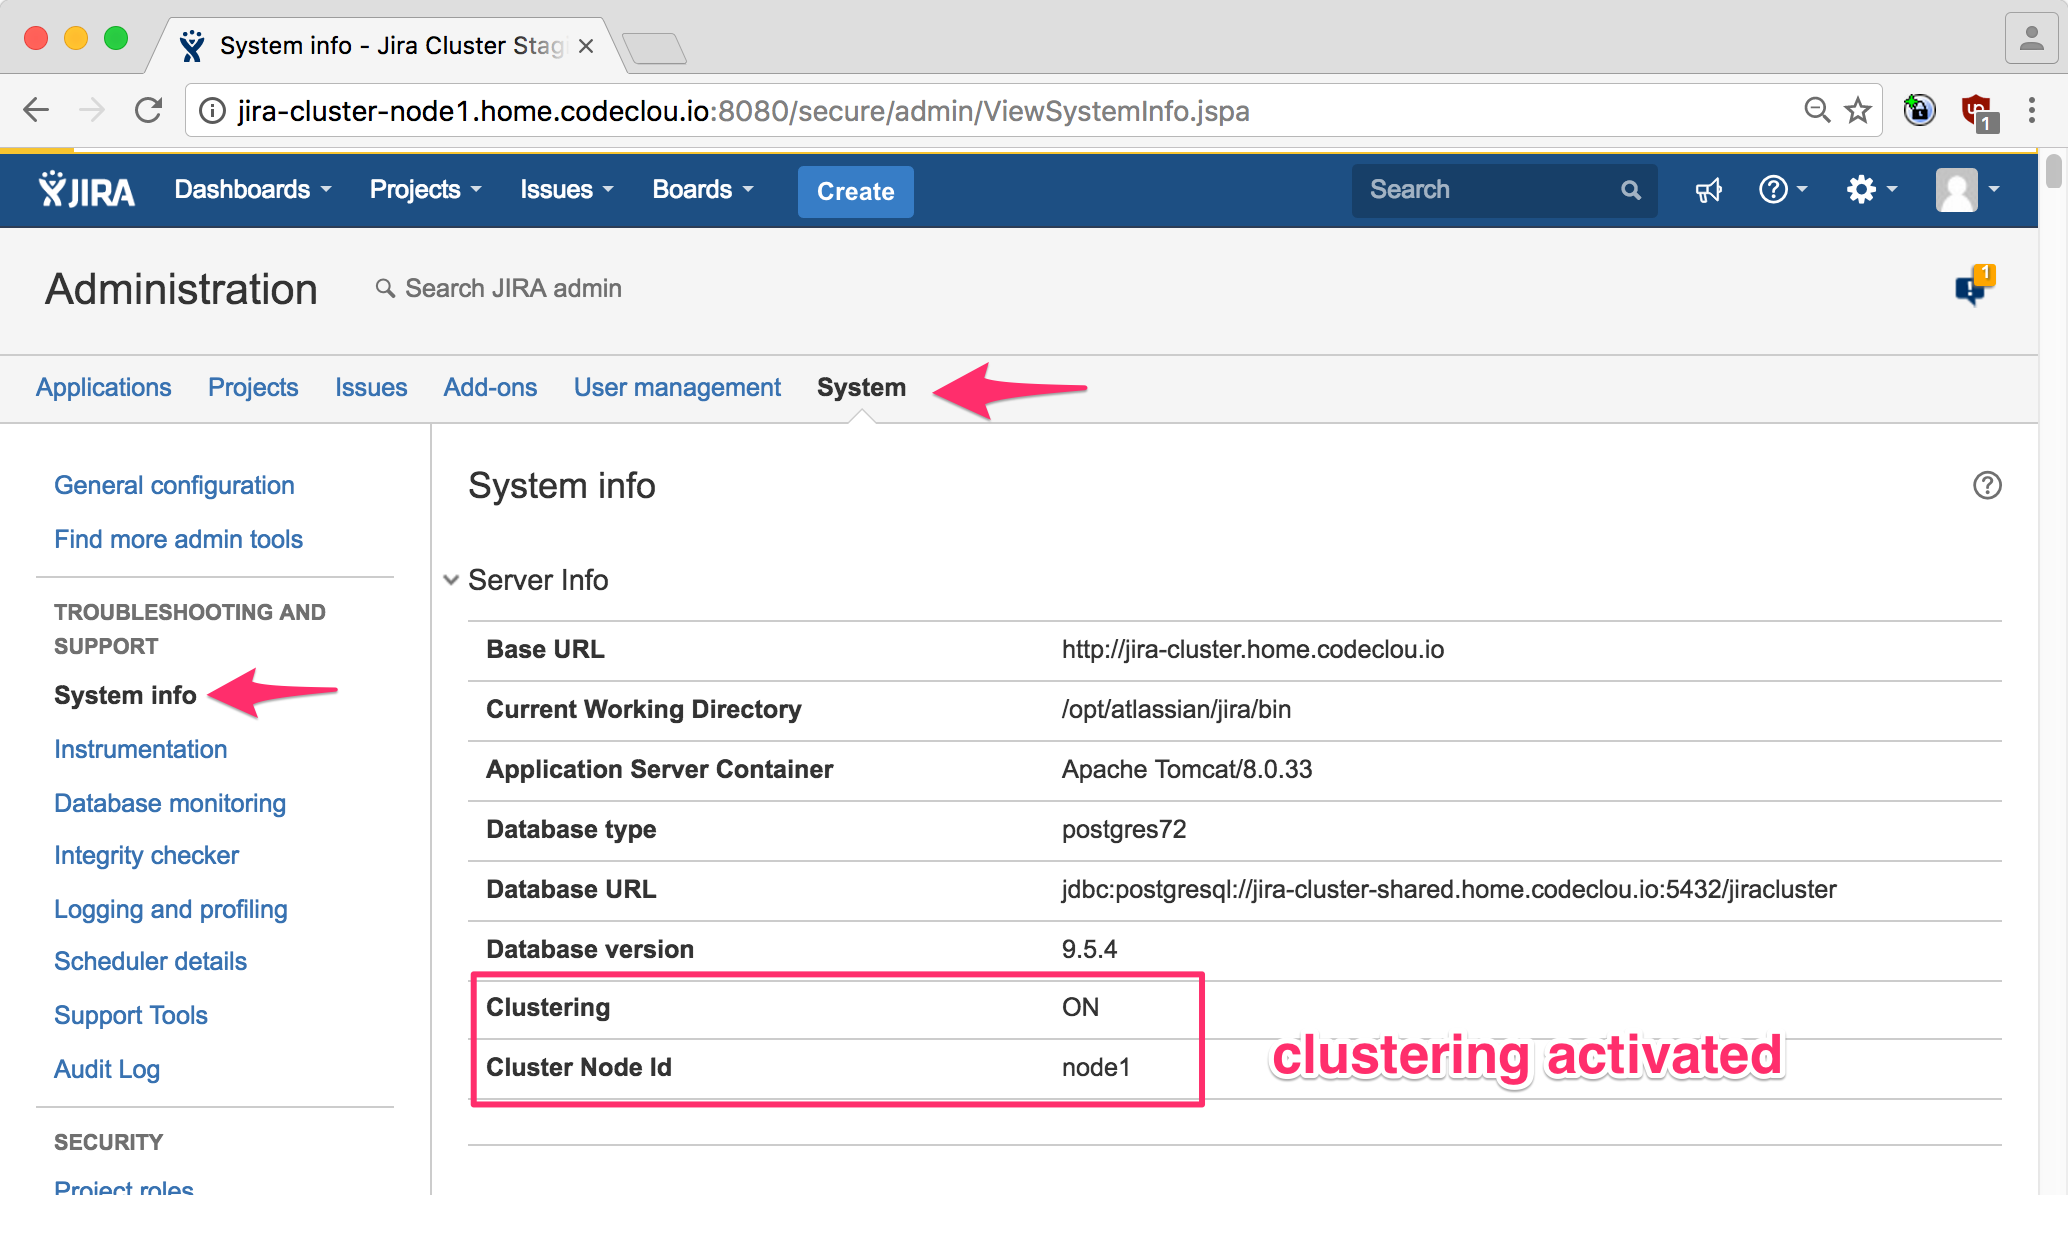 Clustering is show active in System Info